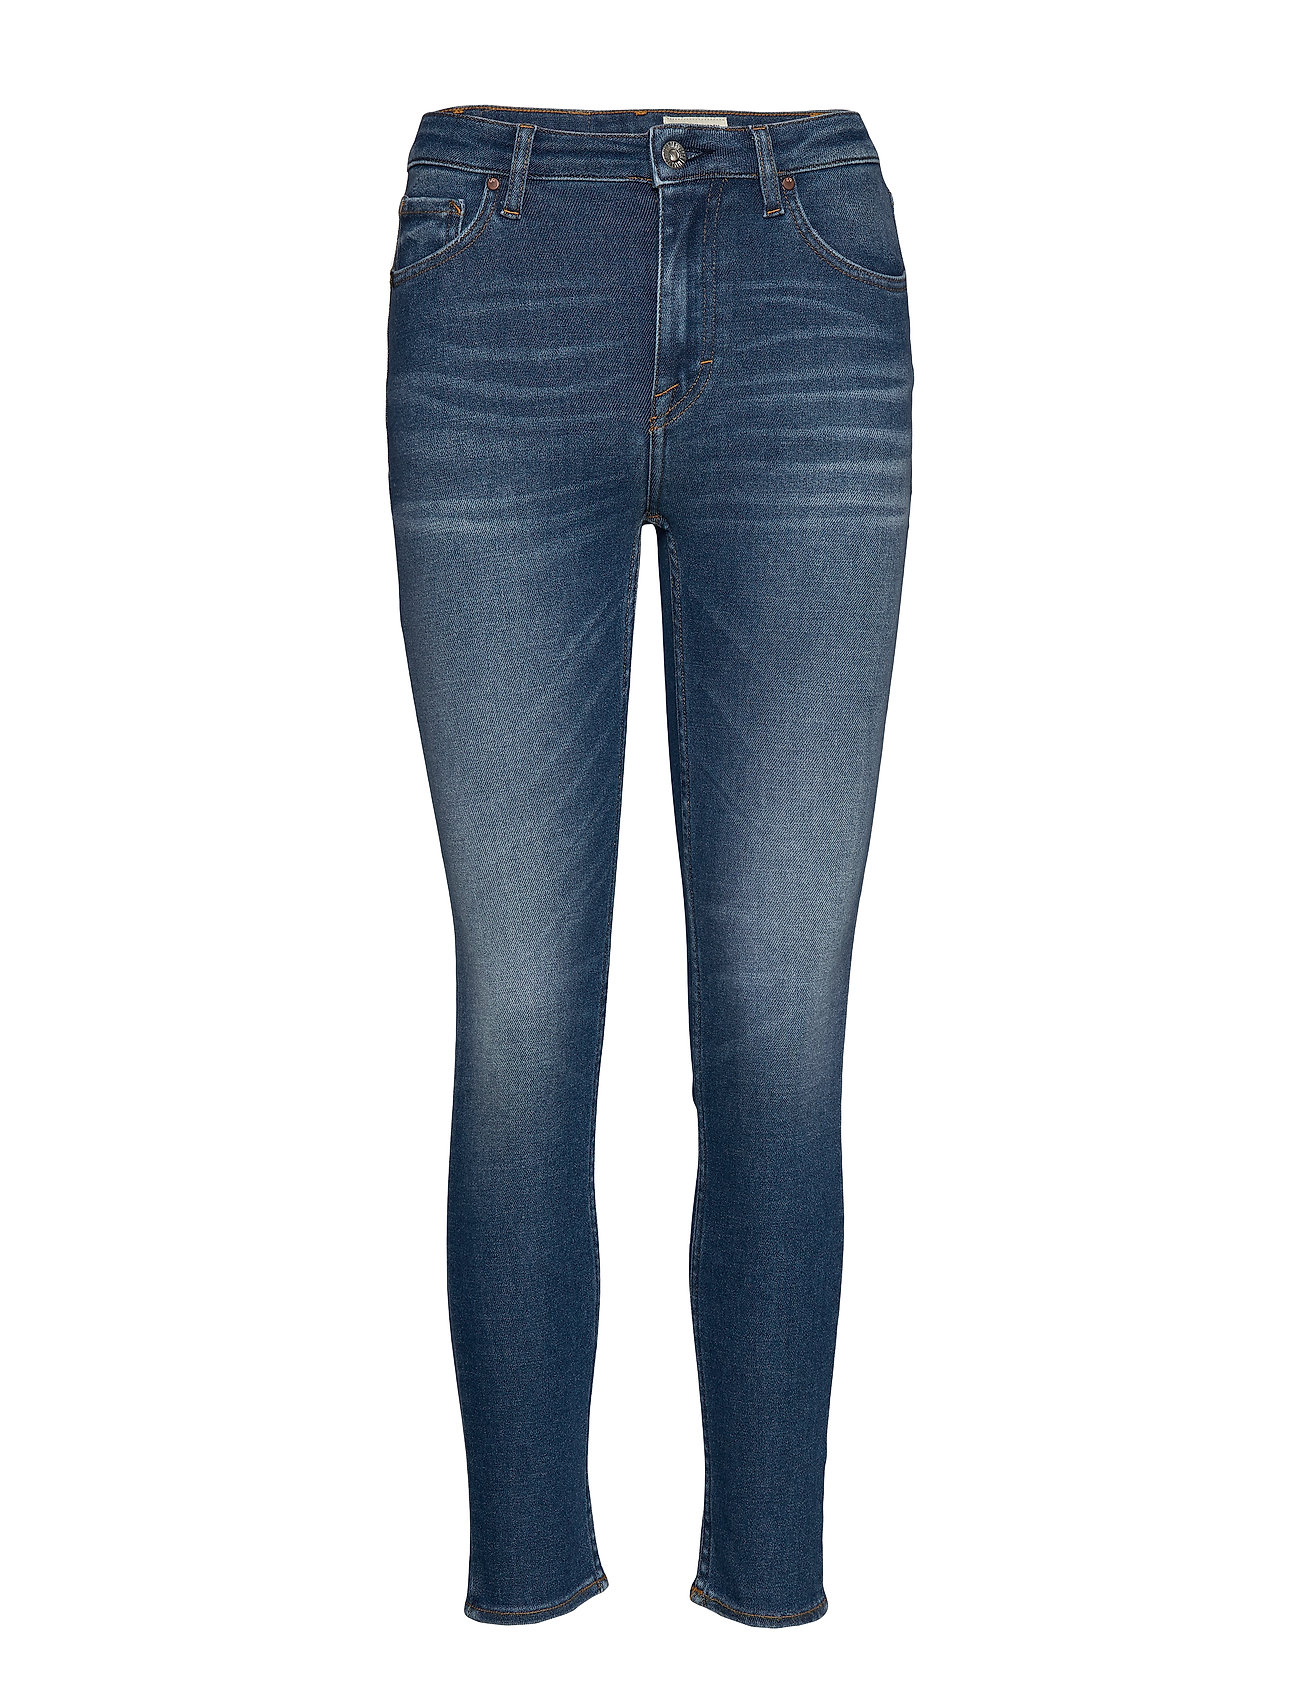 Tiger of Sweden Jeans SHELLY - DUST BLUE